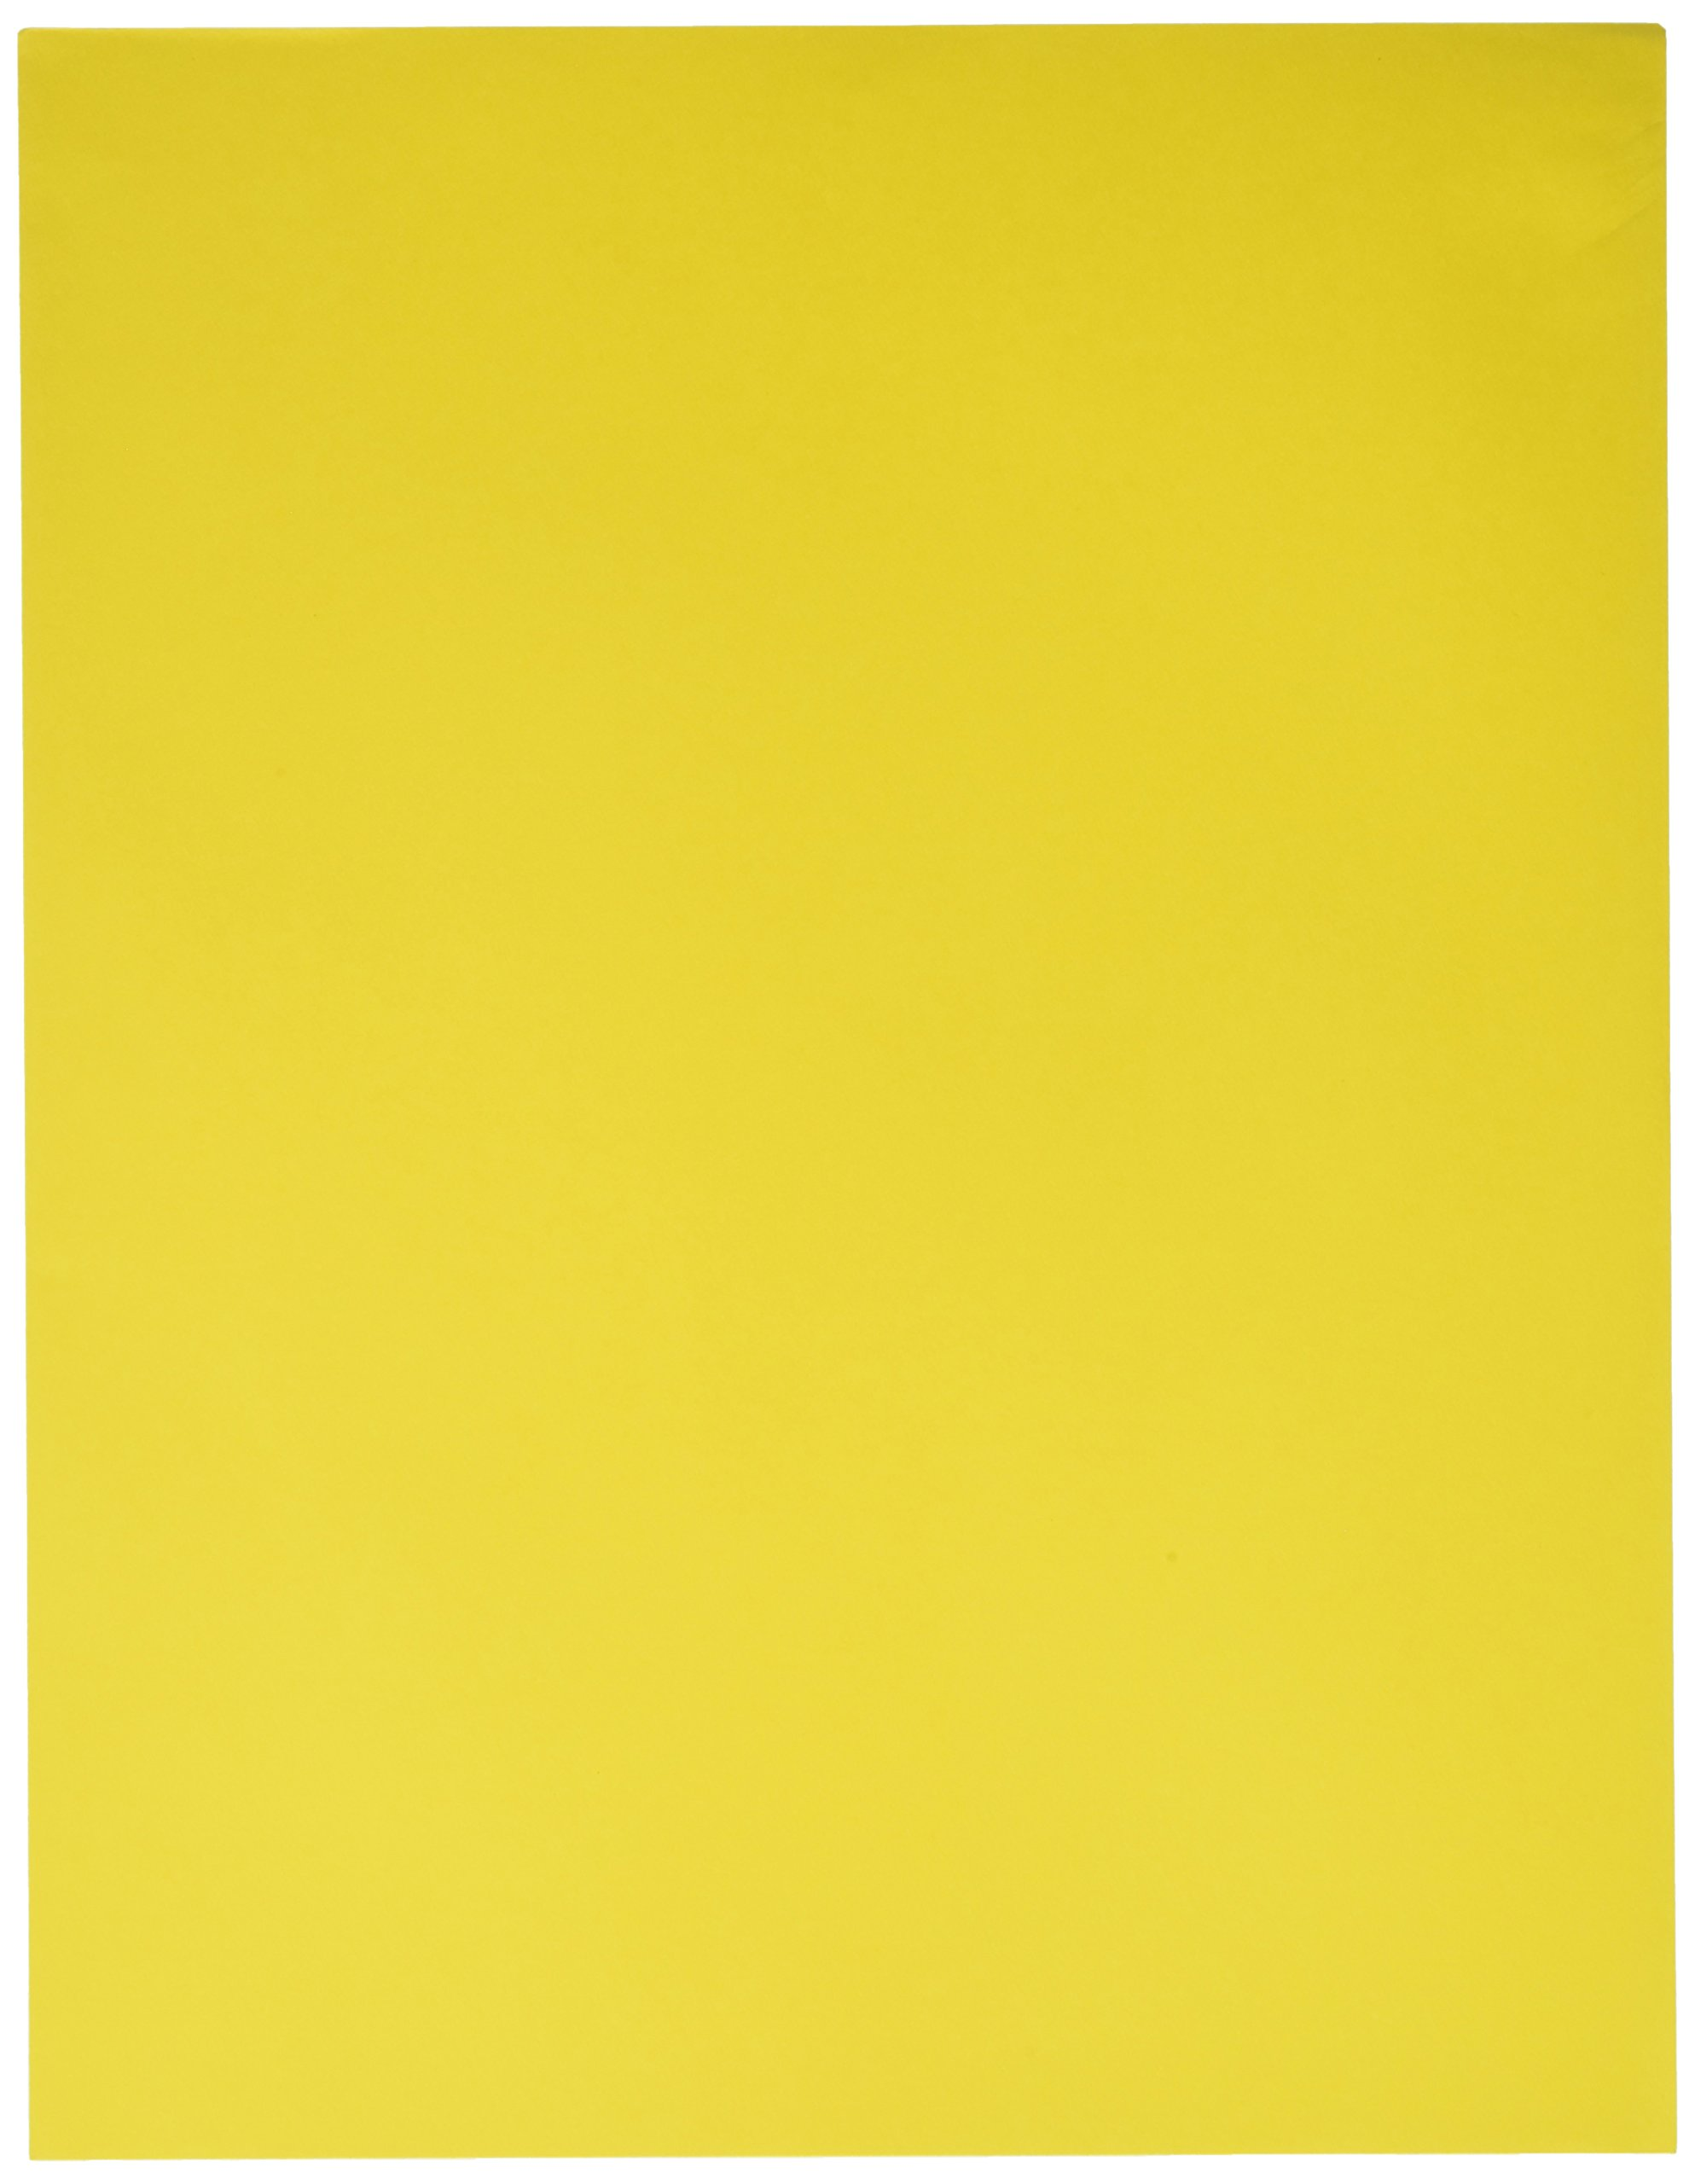 Astrobrights 21538 Acid-Free Copy Paper, 24 lb, 2.5'' Height, 8.5'' Width, 11'' Length, Solar Yellow (Pack of 500)